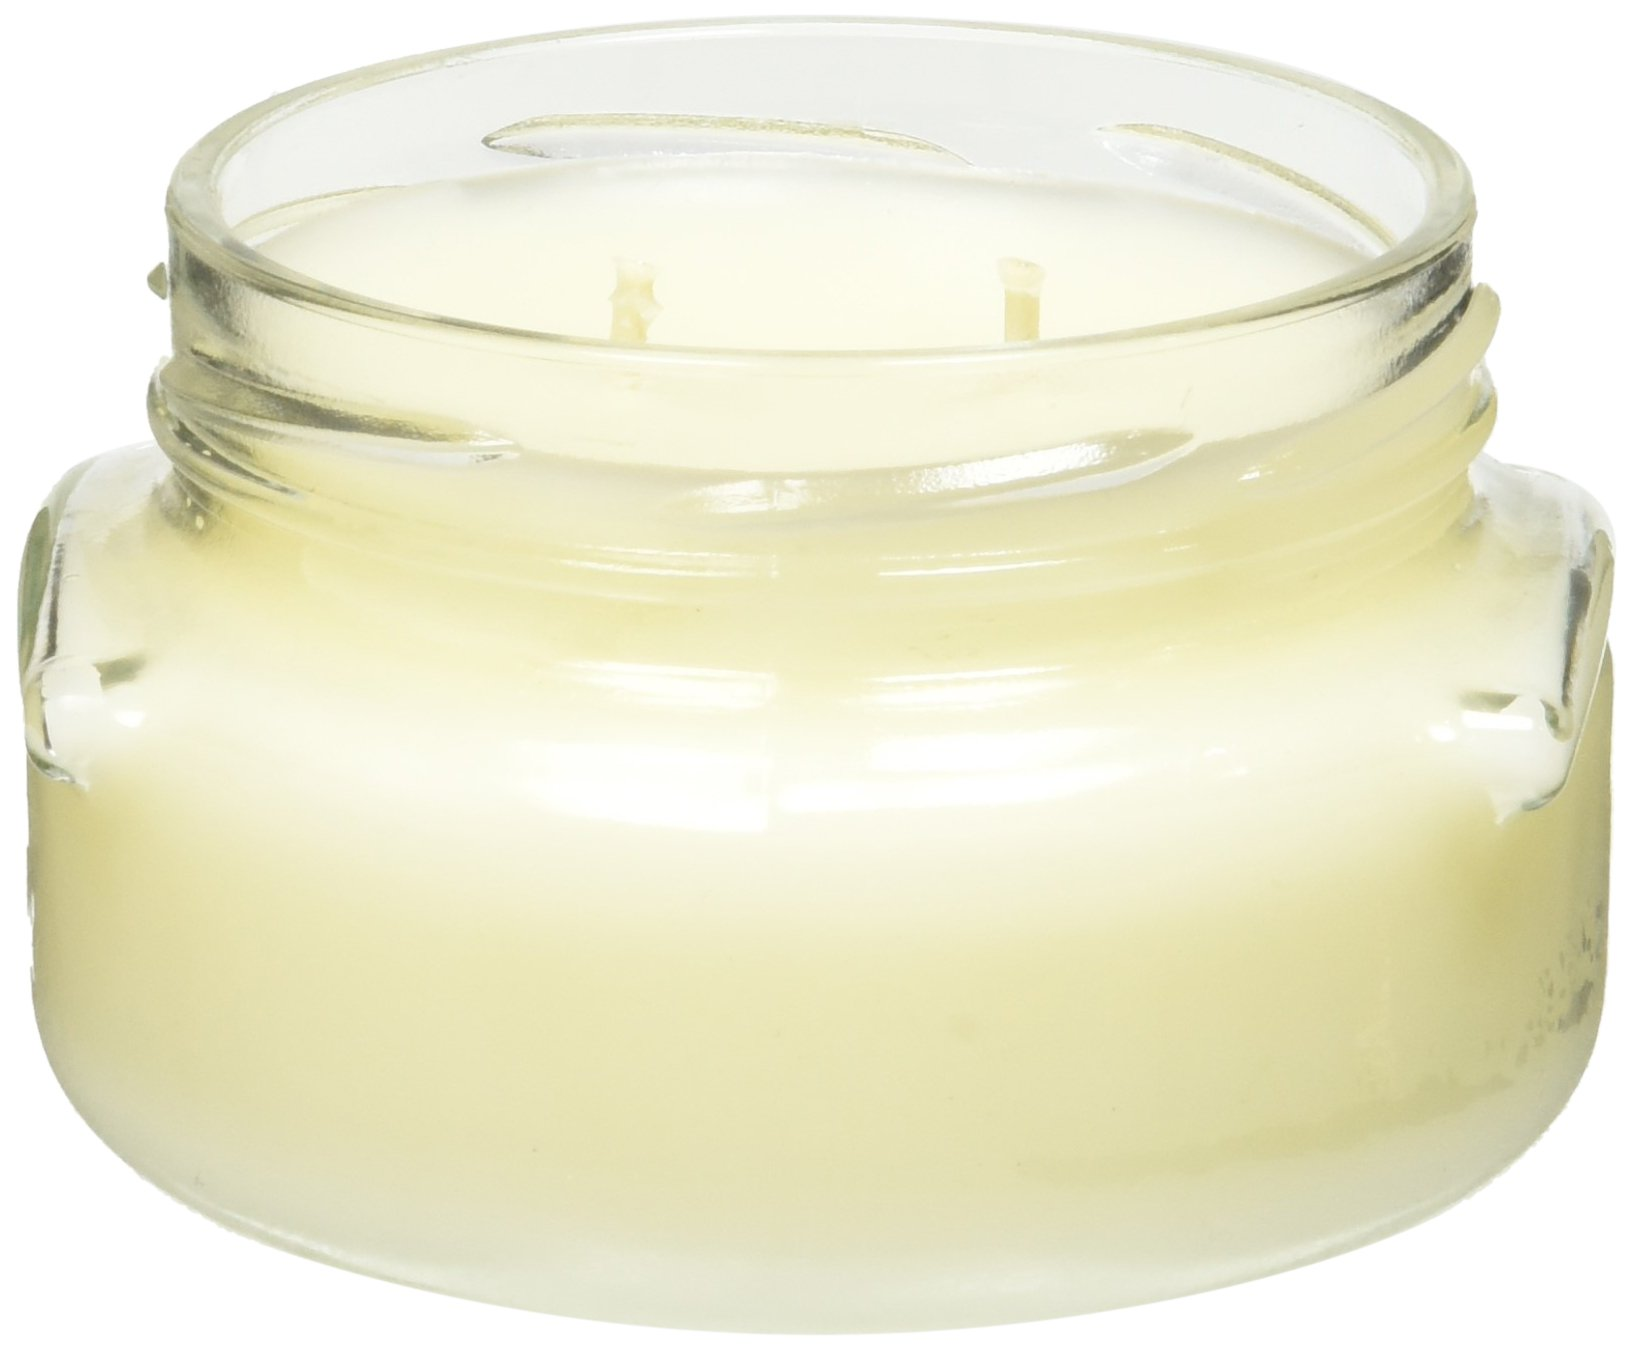 TYLER 2 Wick Diva Scented Candle, 11 oz by Tyler